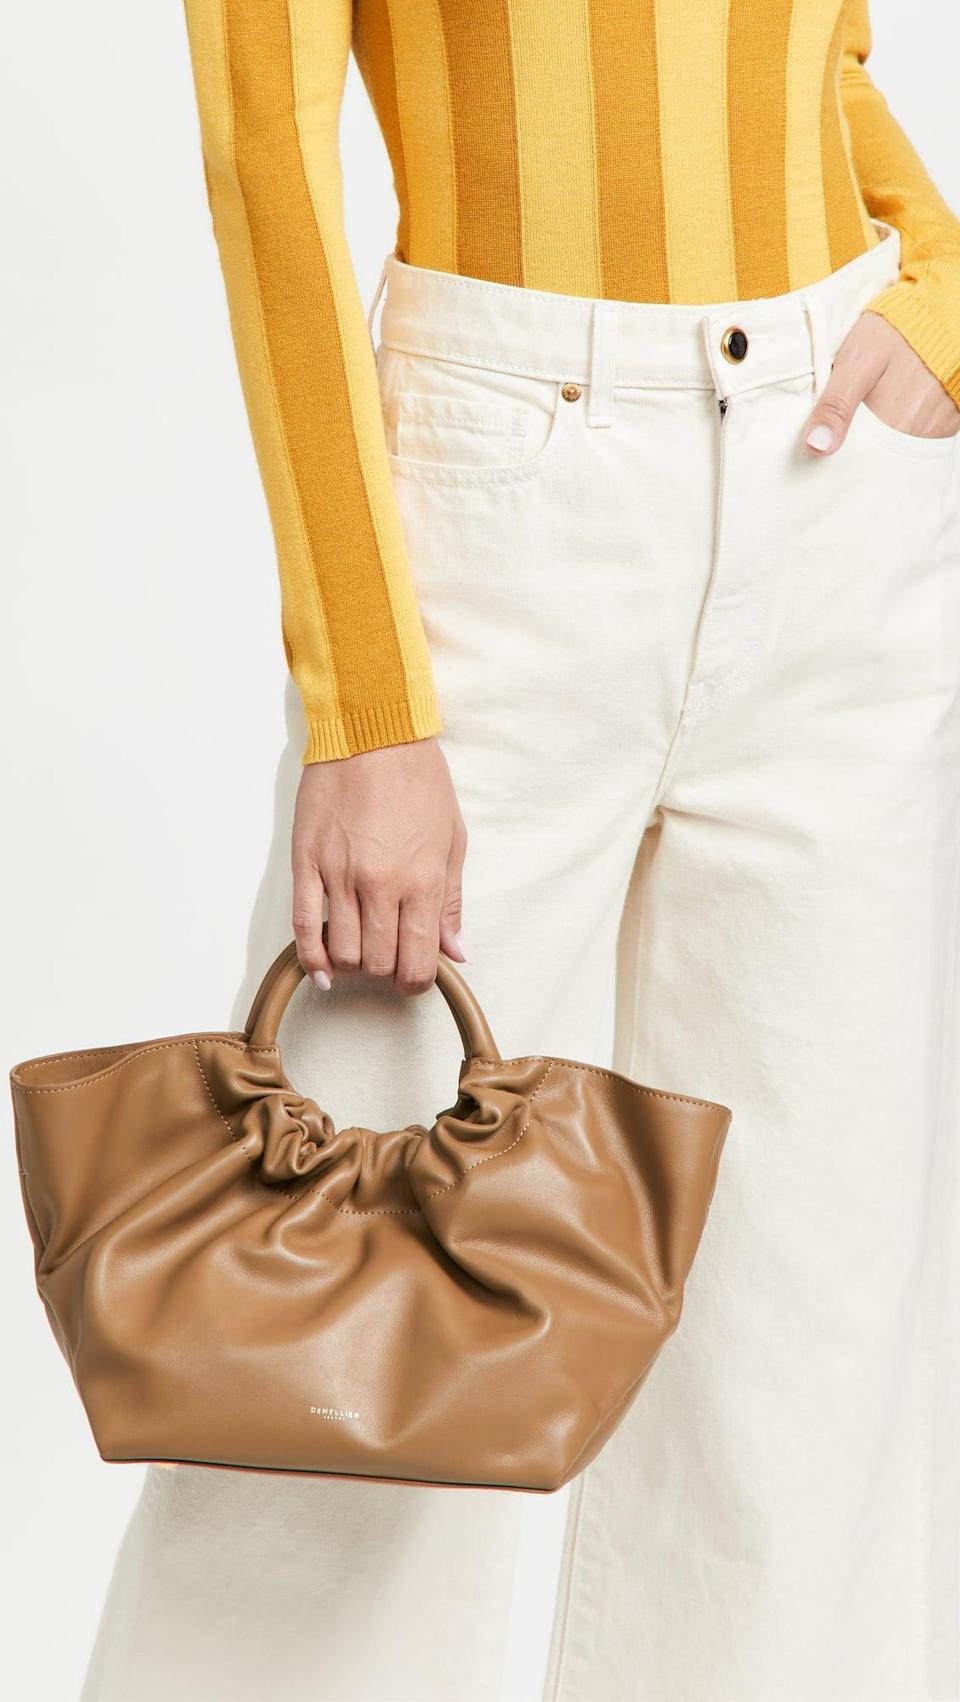 <p>Carry all your necessities in this cute and handy <span>DeMellier Midi Los Angeles Tote</span> ($455). It also comes with a crossbody strap, for easy carrying.</p>